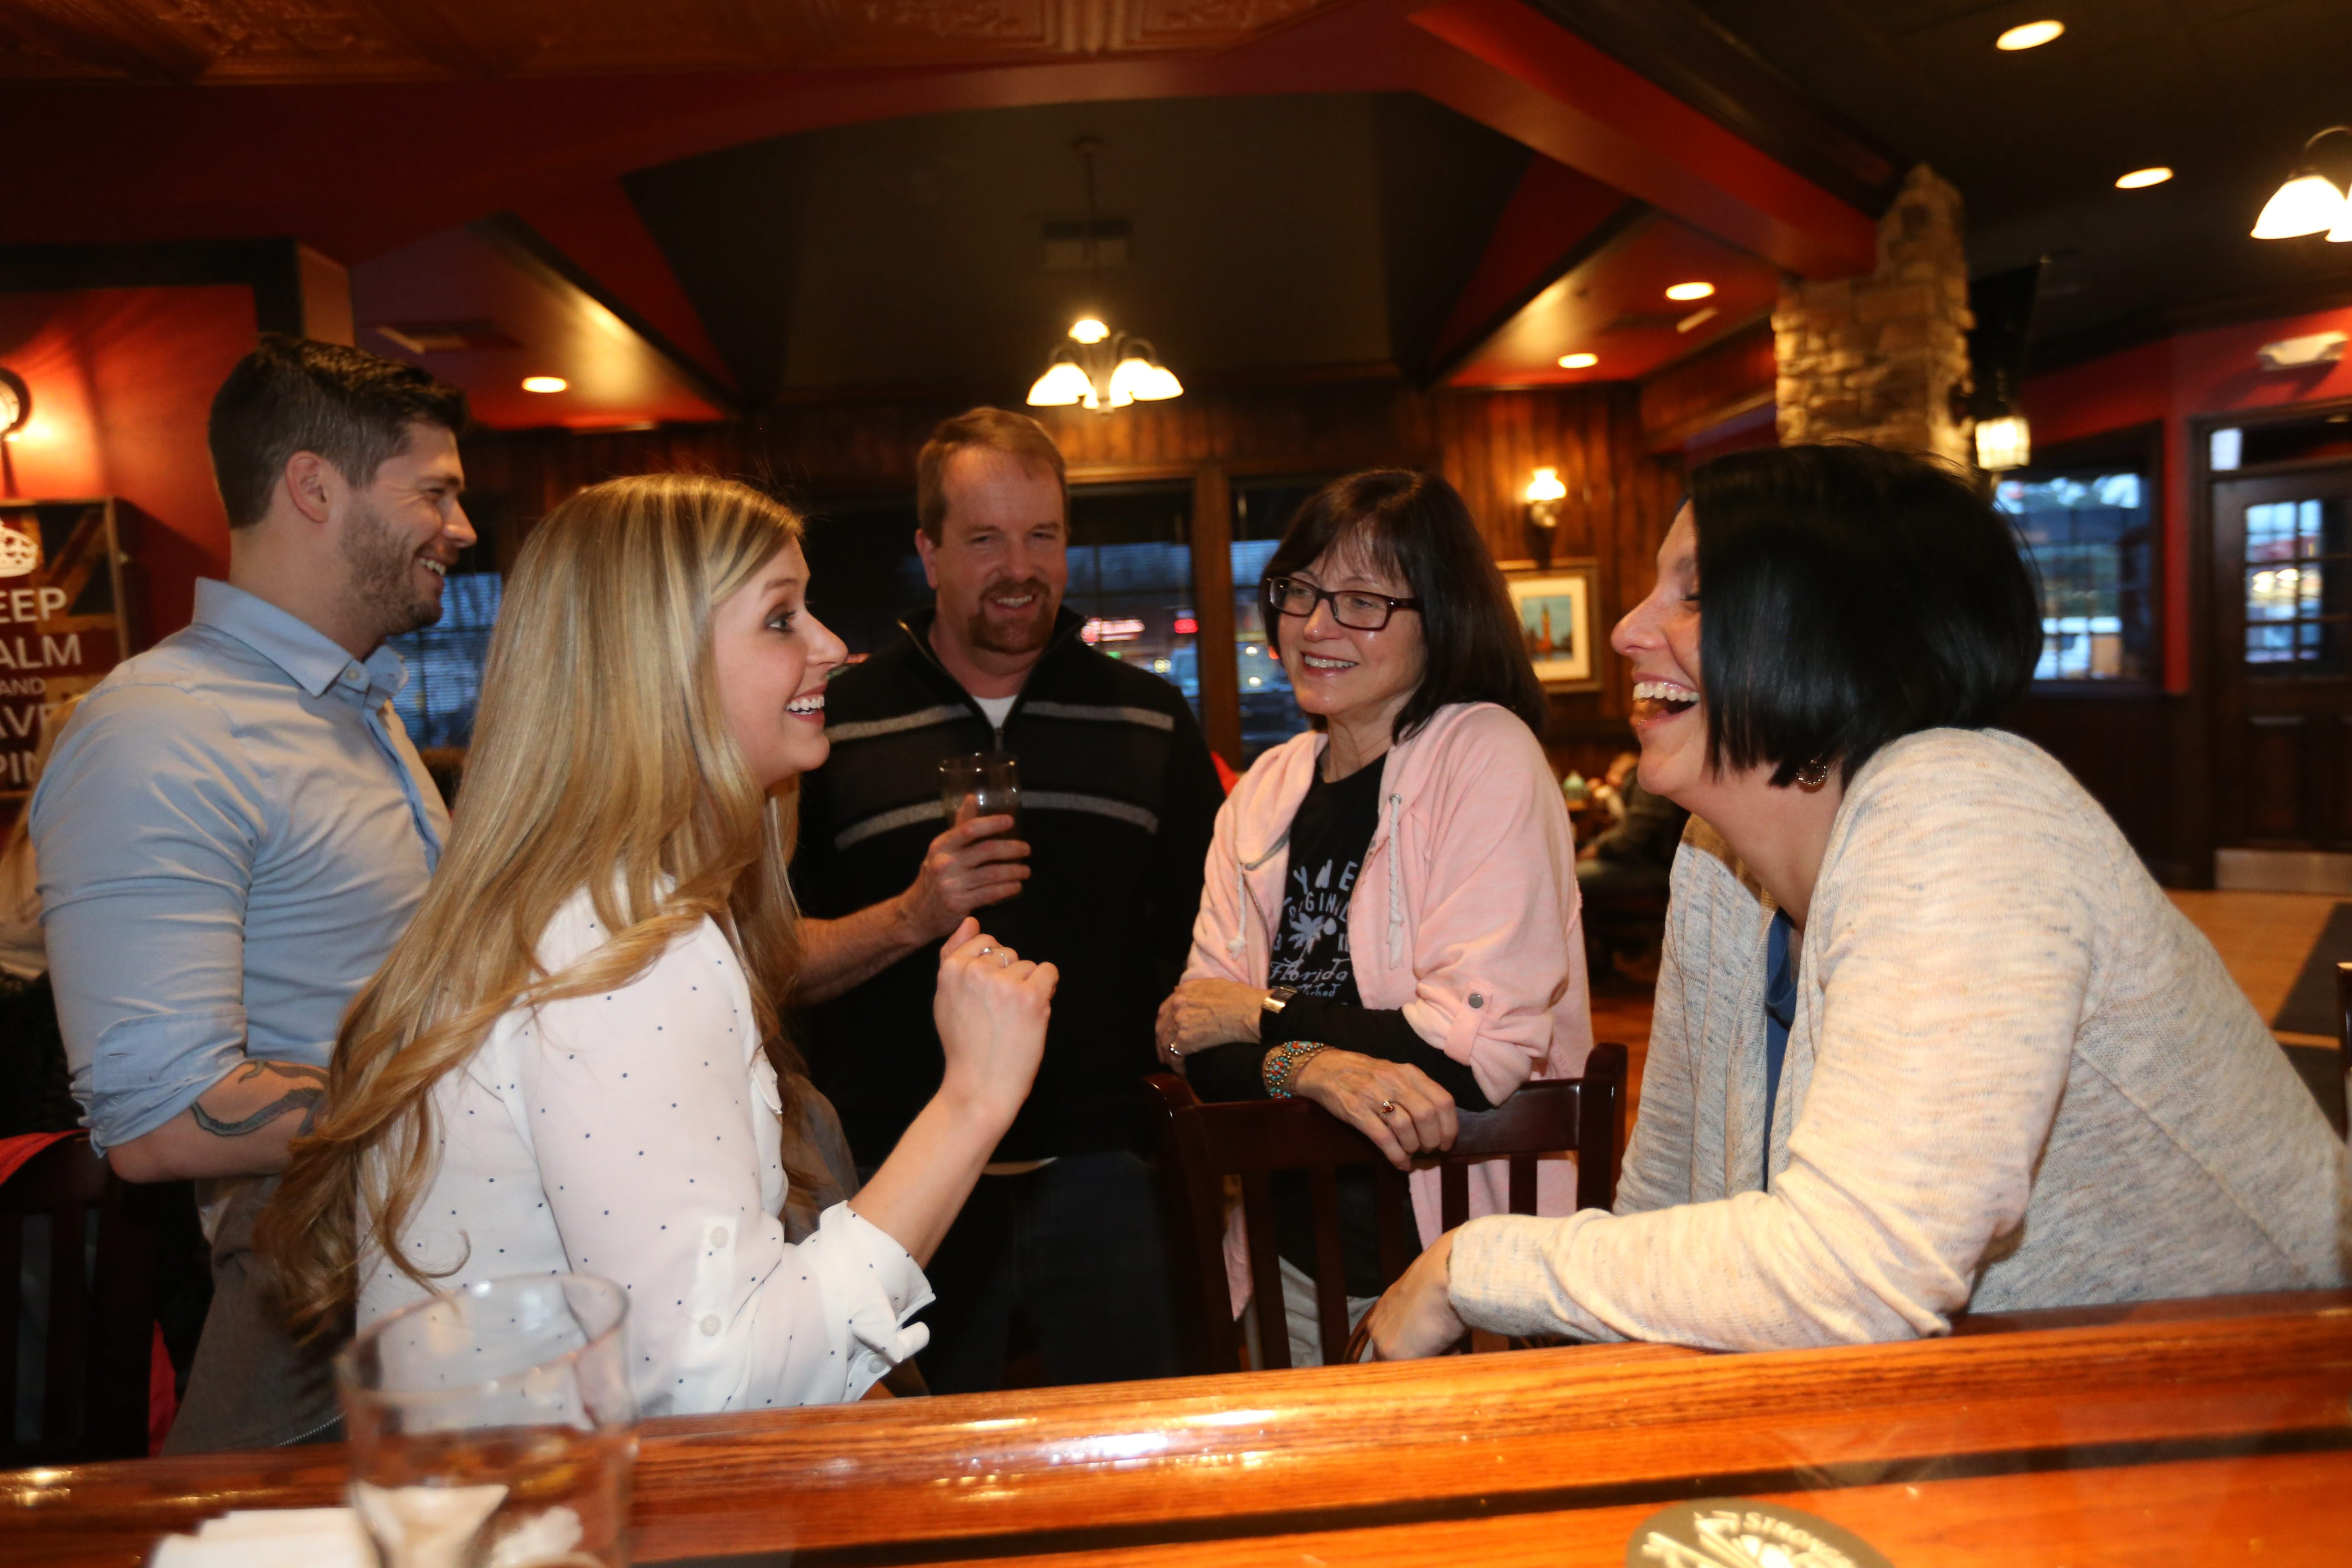 A group of friends hang out at the Tavern at Windsor Park. To view a photo gallery, visit buffalonews.com.